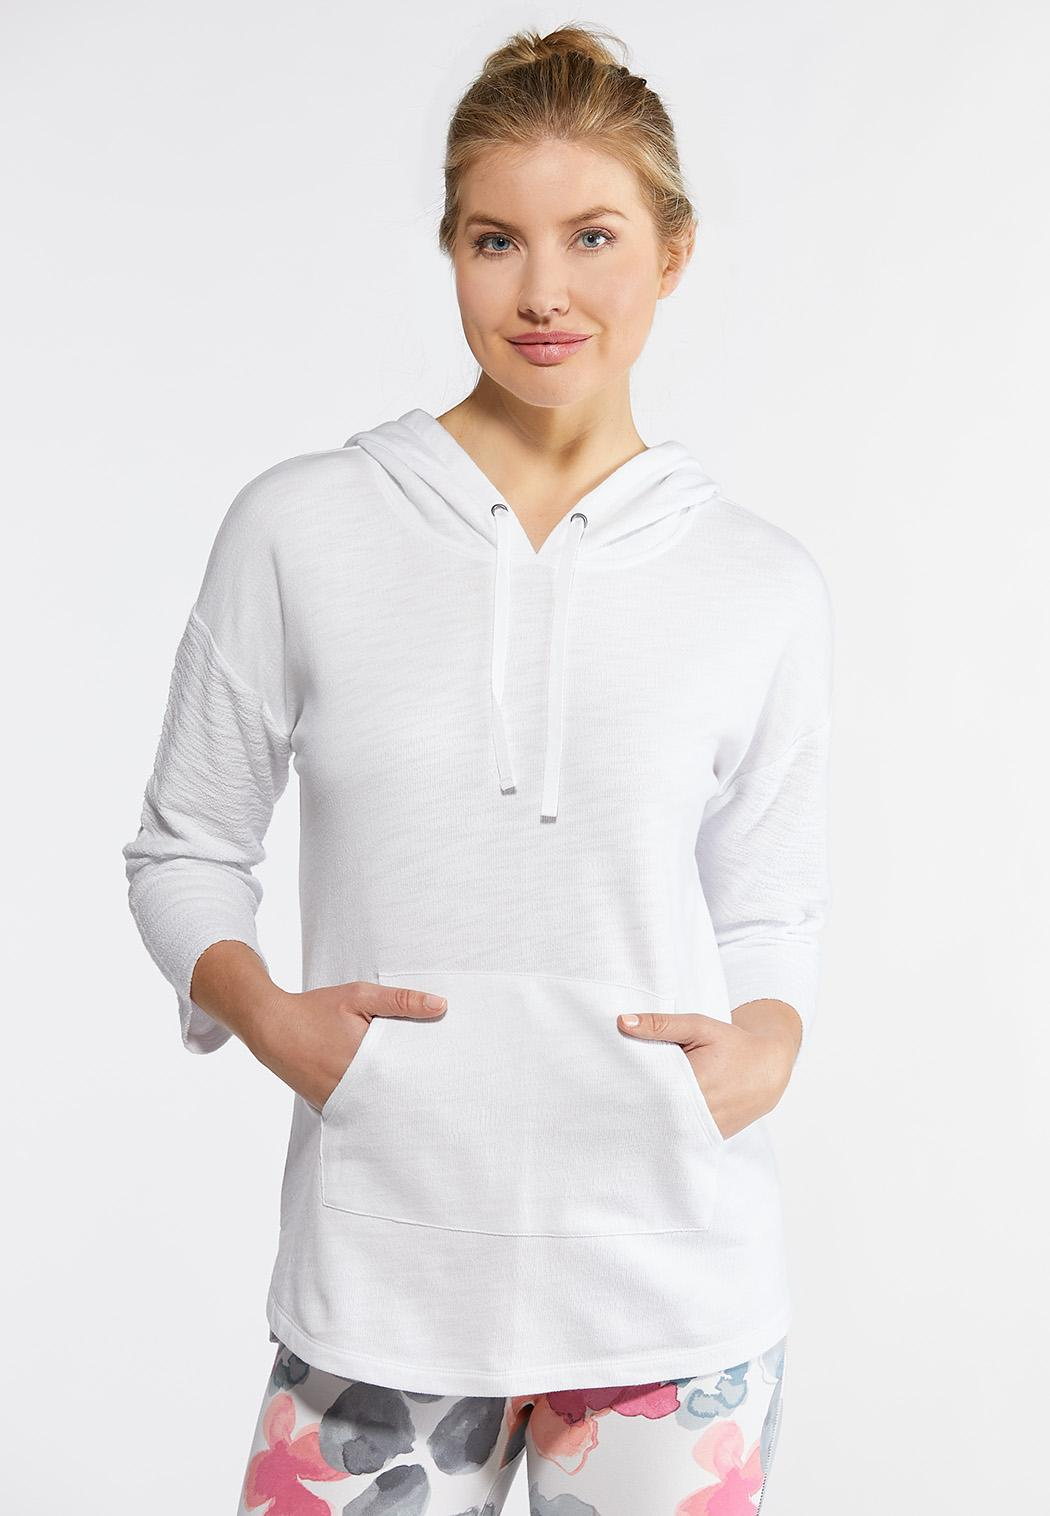 fed45194d83 Plus Size White Terry Hoodie Tops Cato Fashions